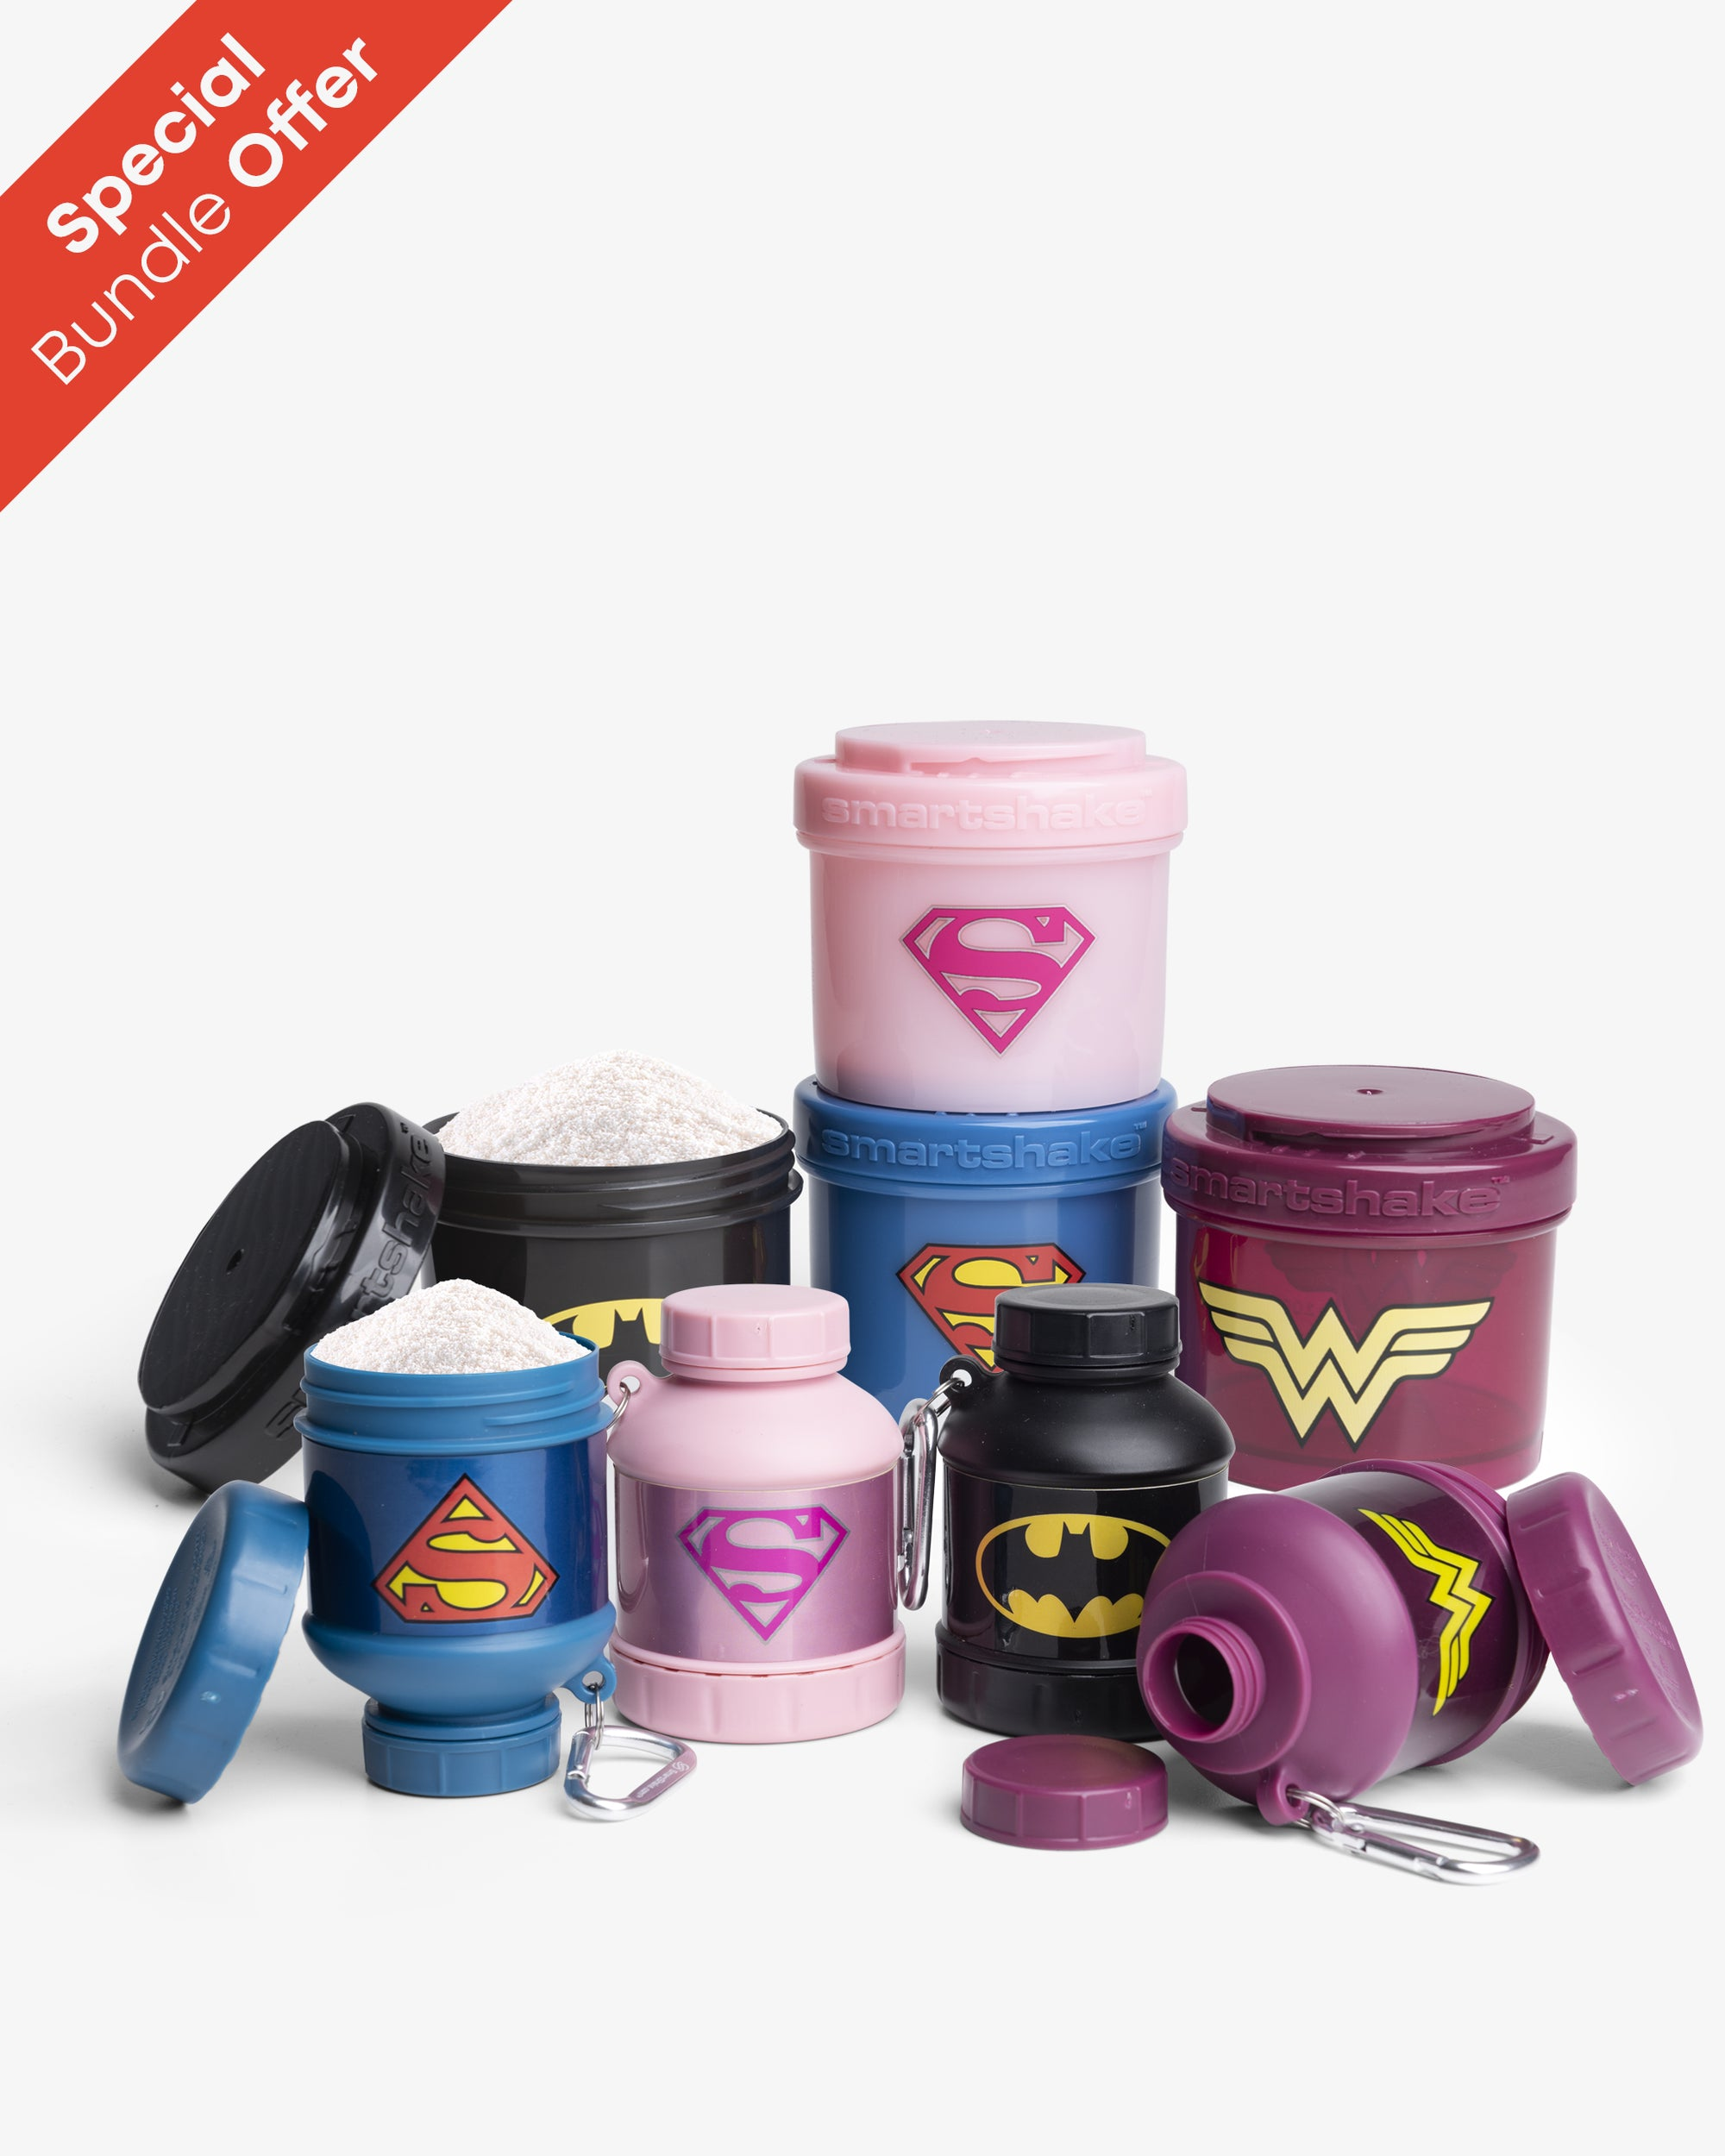 DC Accessories 4 pack bundle with 25% OFF